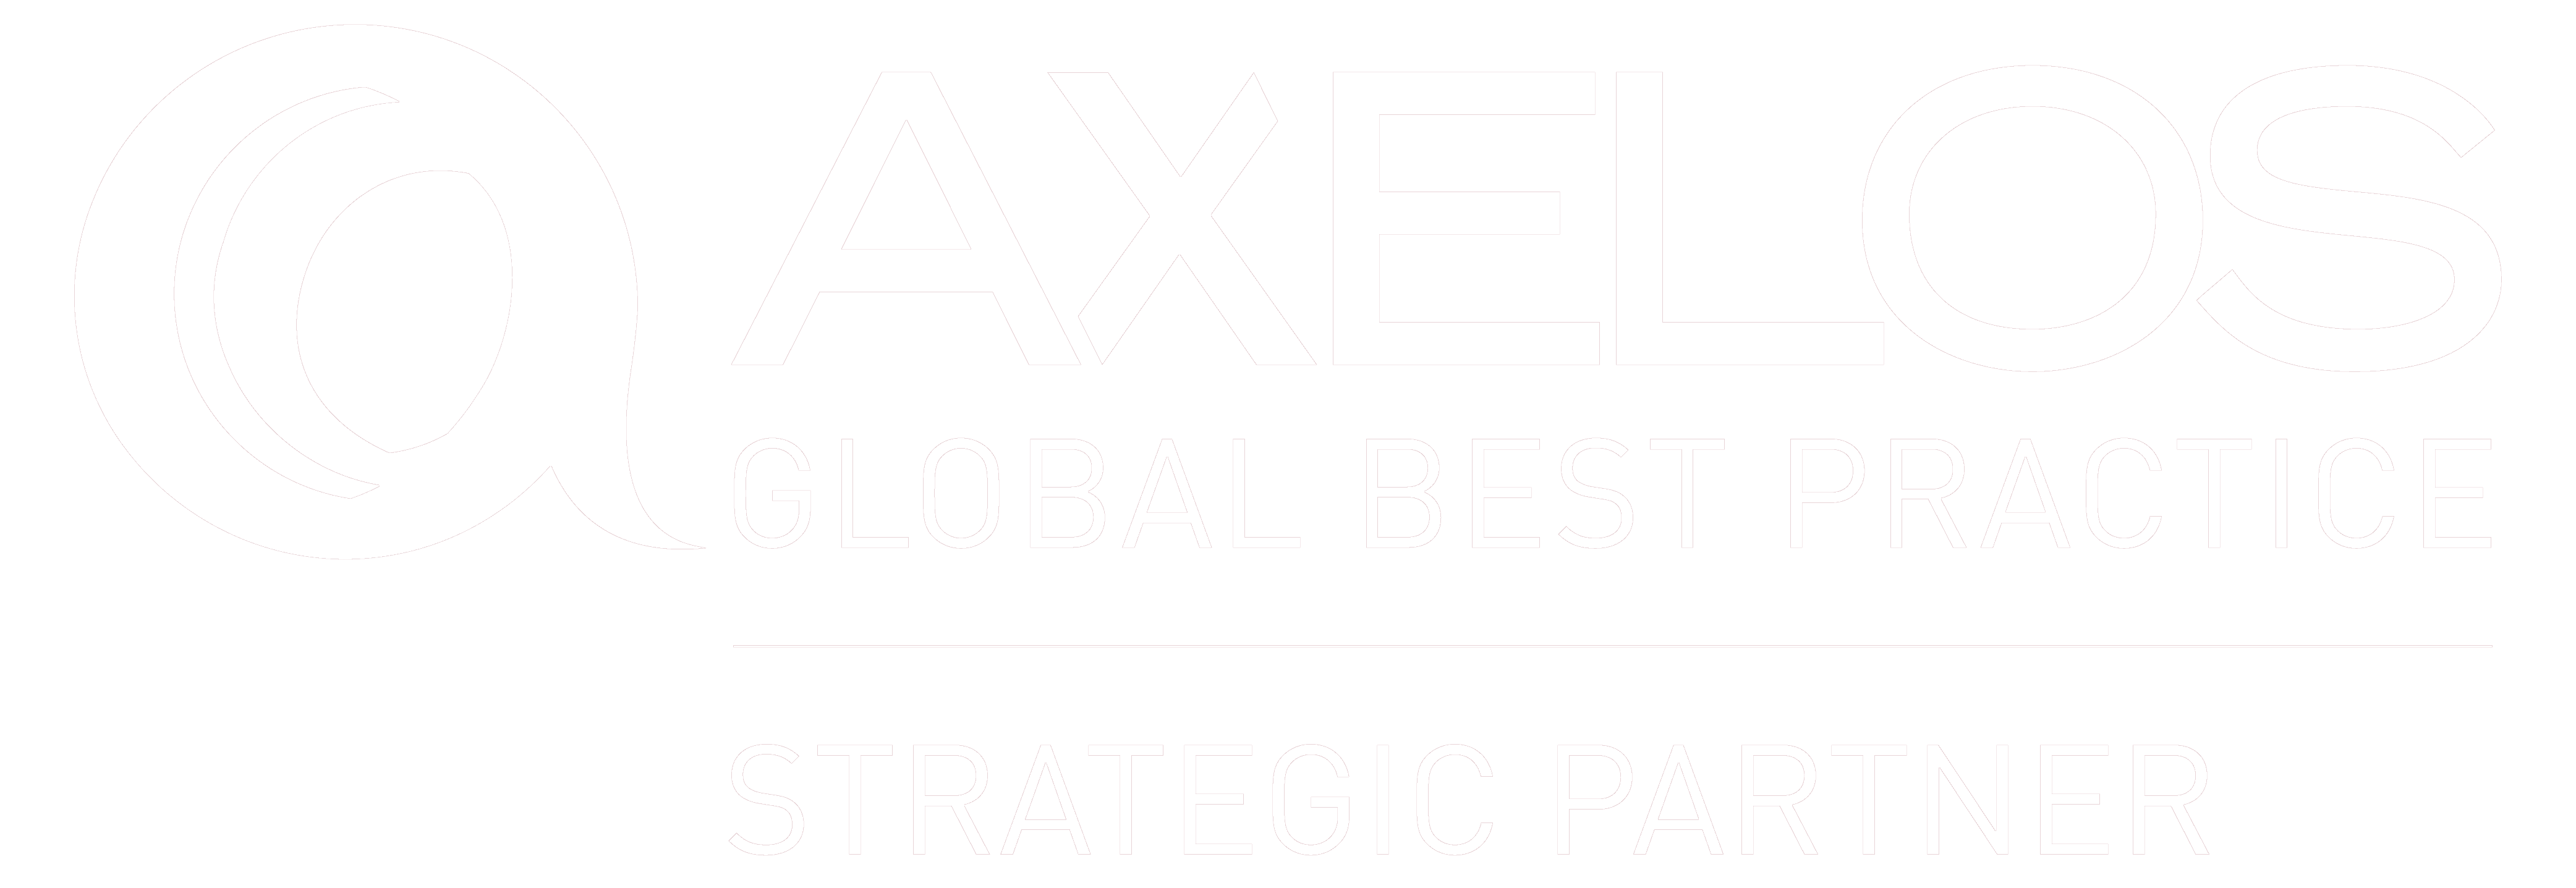 Axelos global partner logo - white